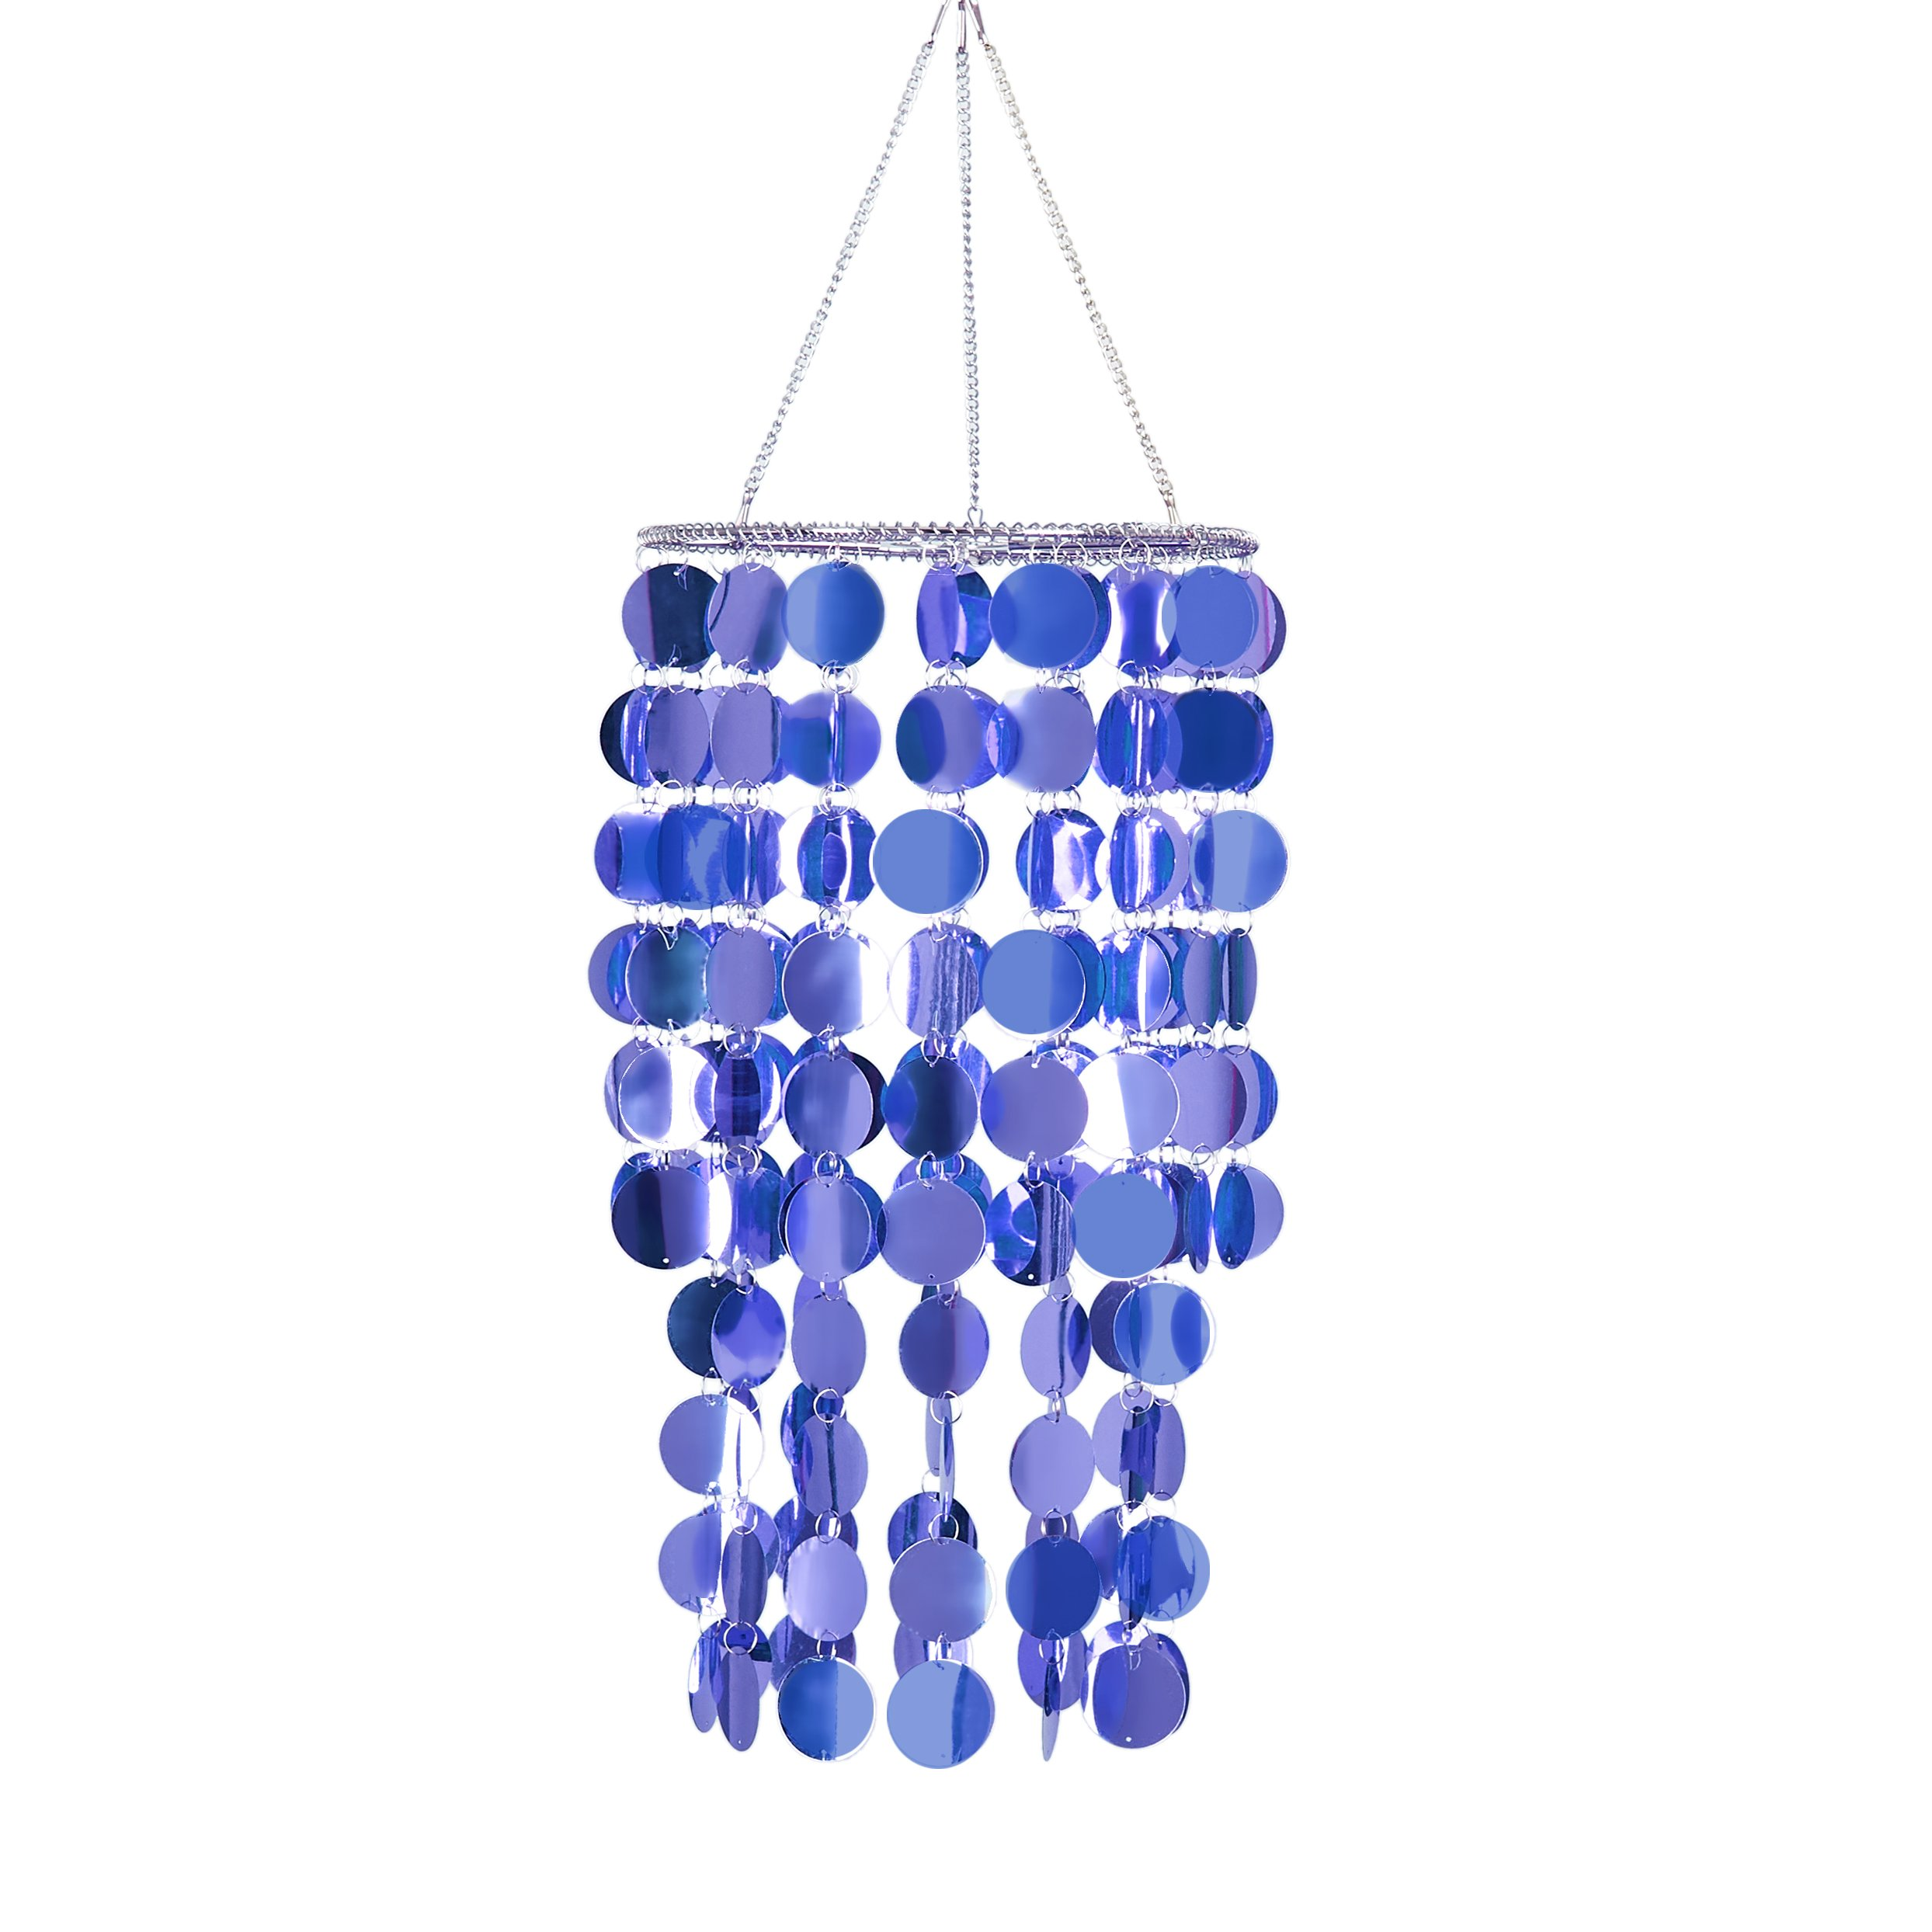 FlavorThings Light Purple Bling Hanging Chandelier Great idea for Wedding Chandeliers Centerpieces Decorations and Any Event Party Decor by FlavorThings